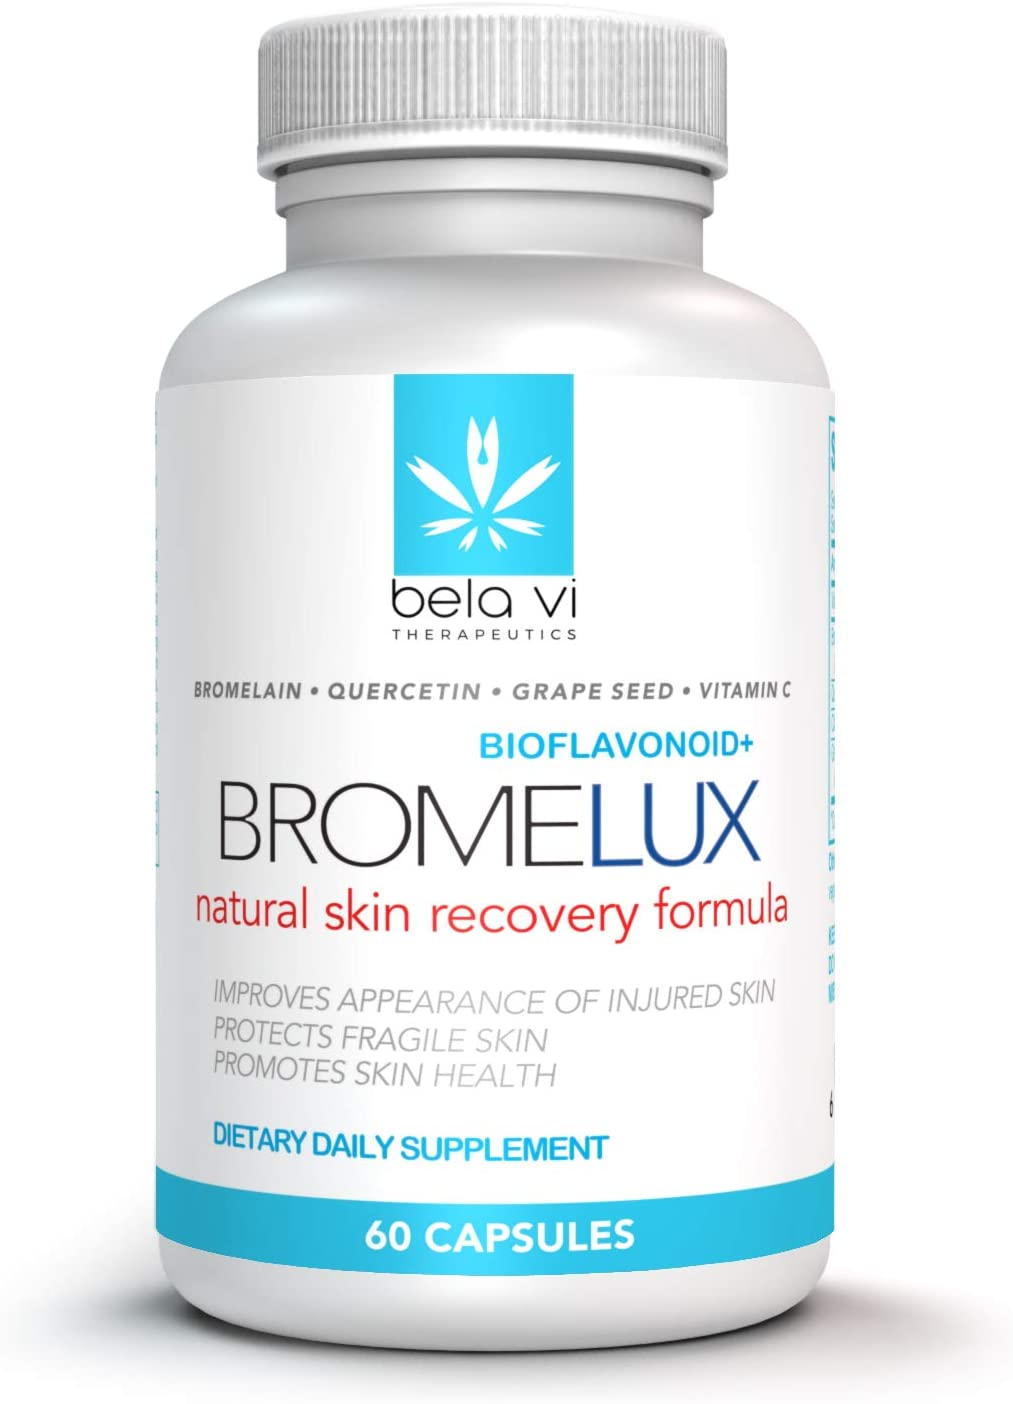 BROMELUX Anti-Bruising Supplement I Bromelain & Quercetin Complex: Swelling & Bruise Relief, Natural Anti-Inflammatory Treatment I for Daily Care & Recovery After Surgery & Skin Trauma I 60 Capsules